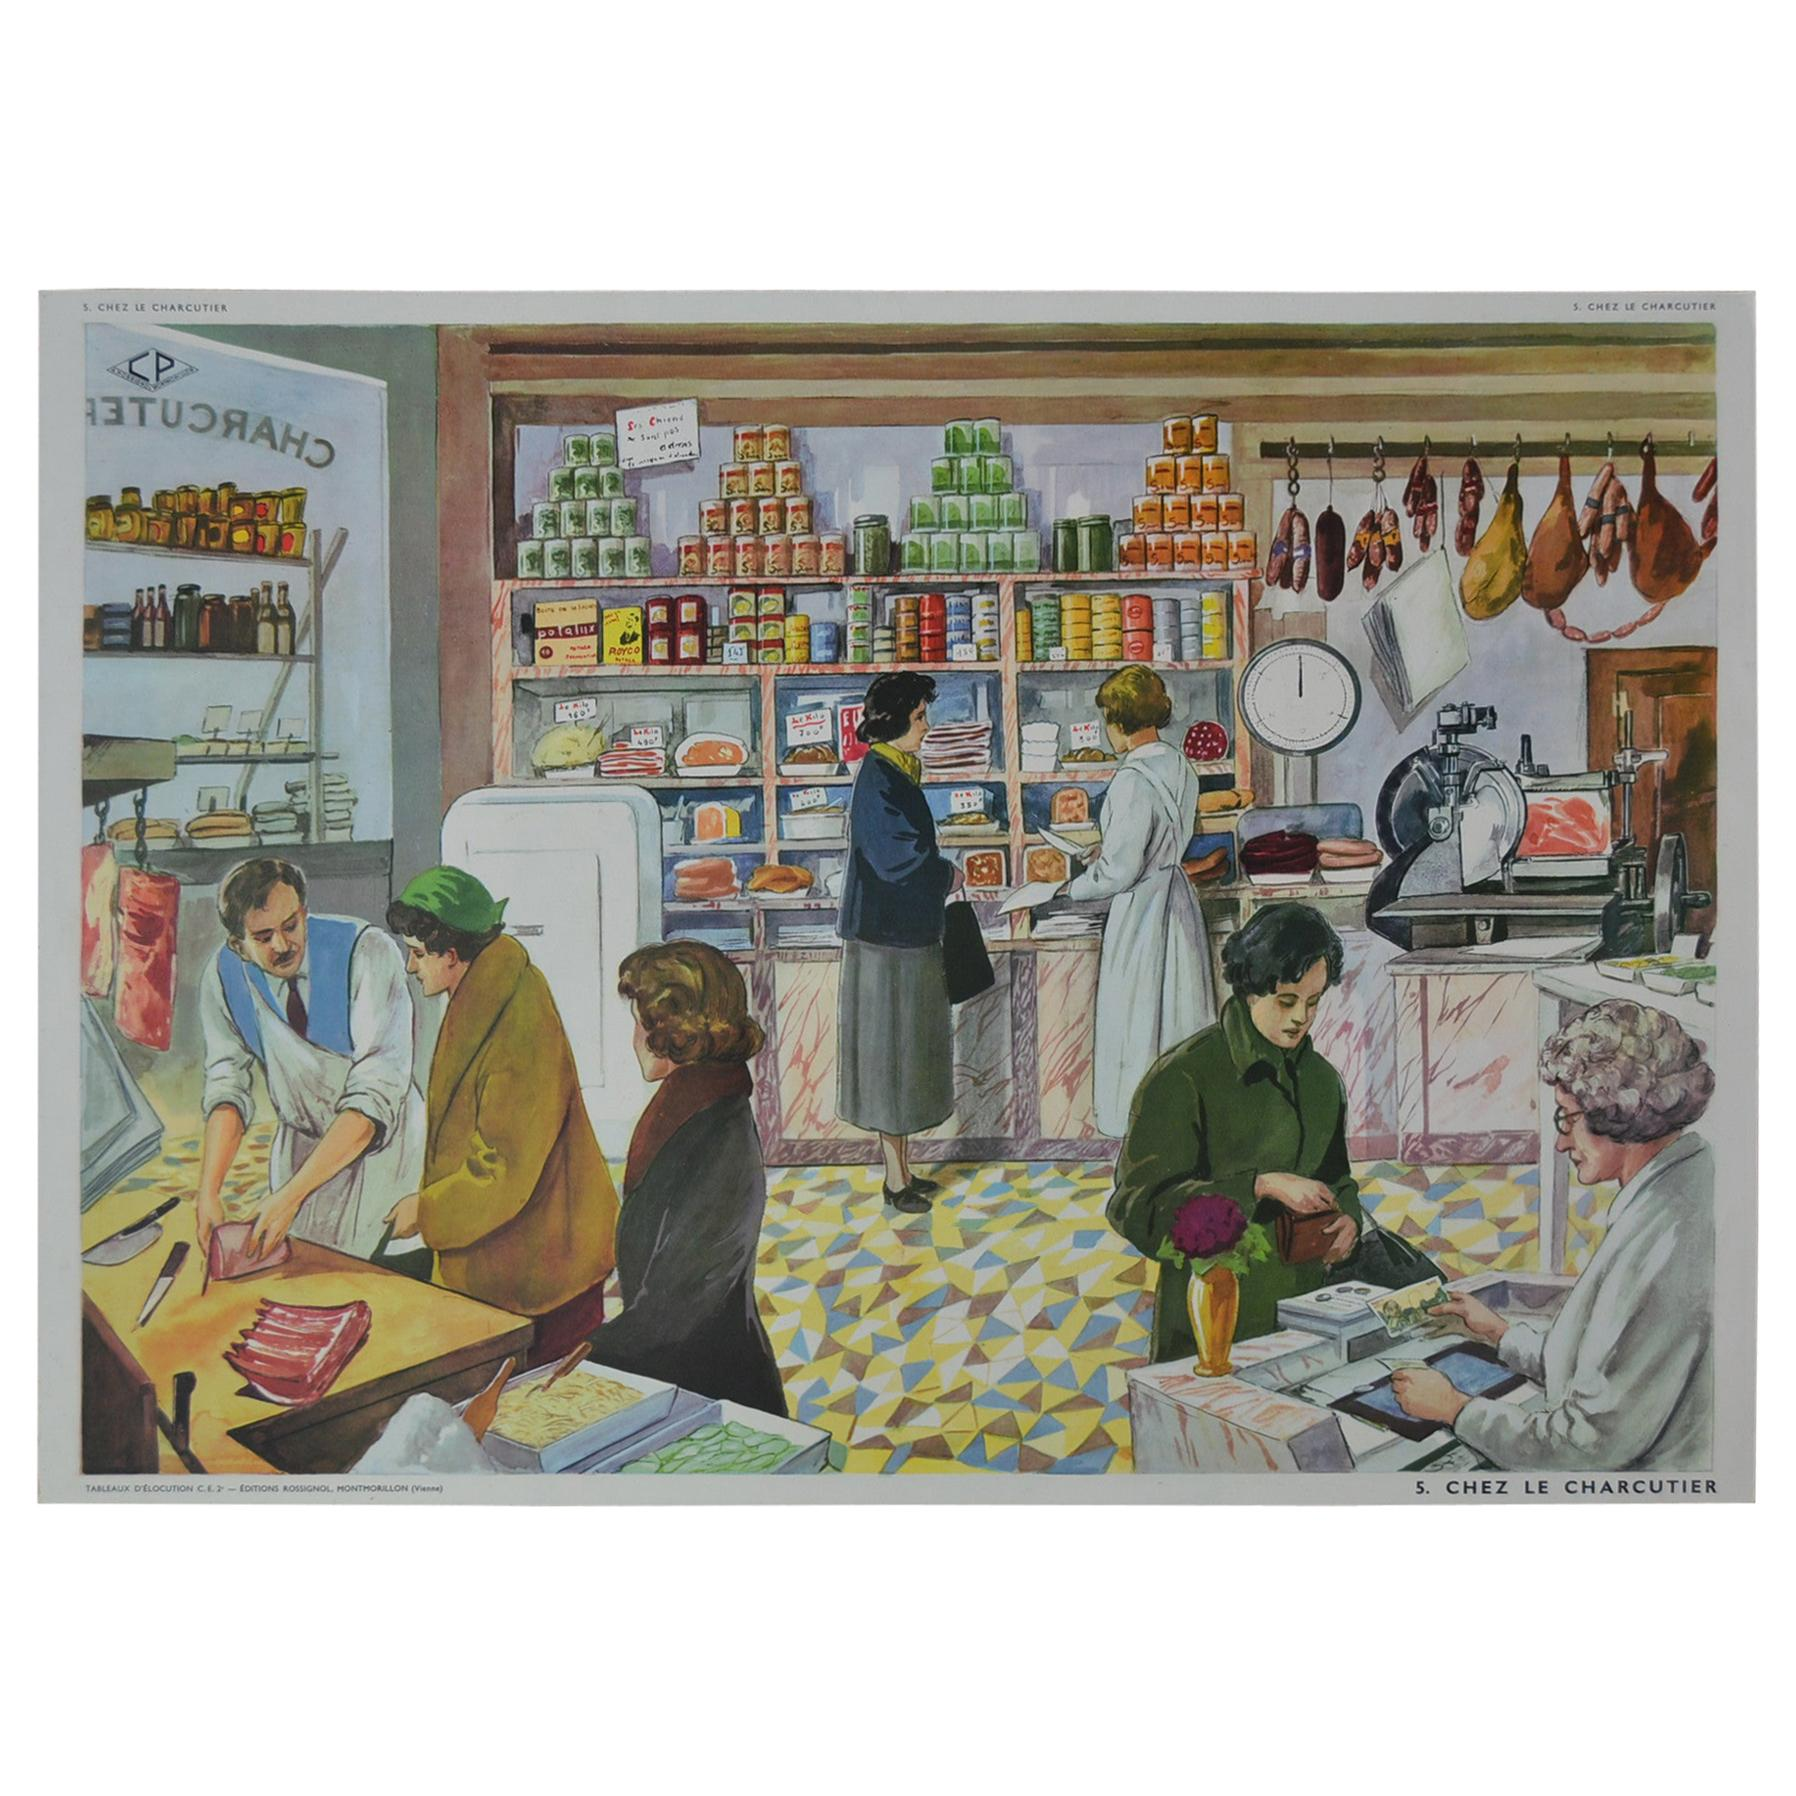 1960s School Poster, At the Butcher's Shop by Rossignol